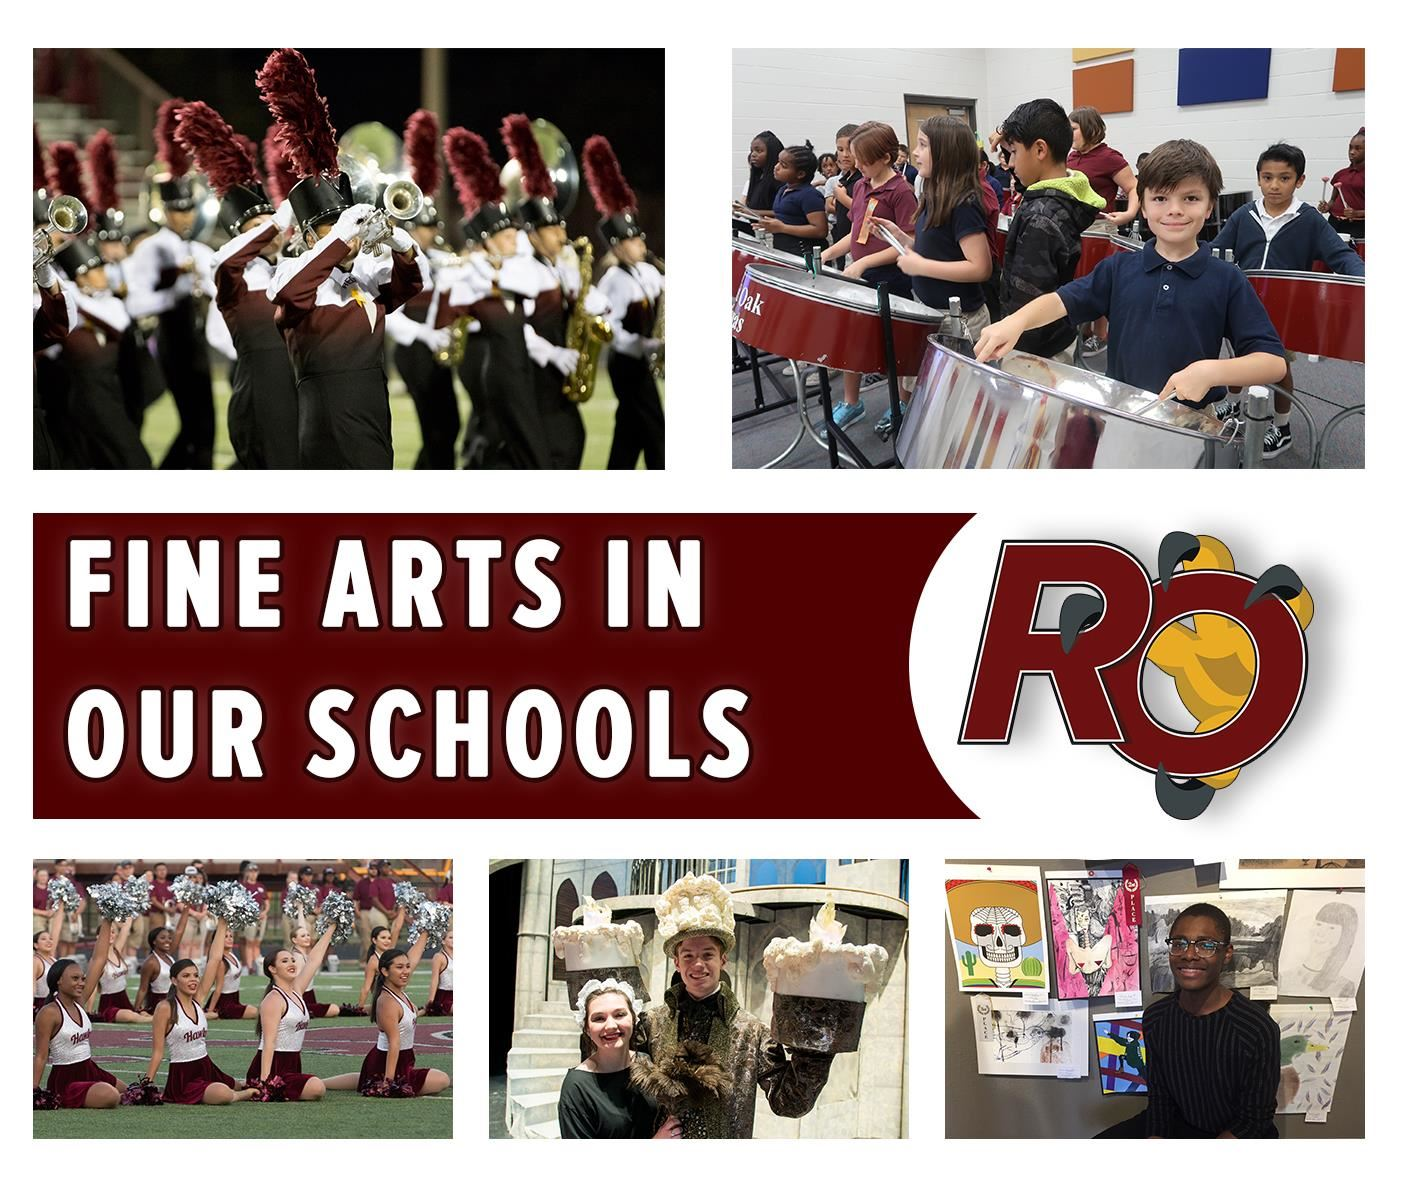 Fine Arts in Our Schools